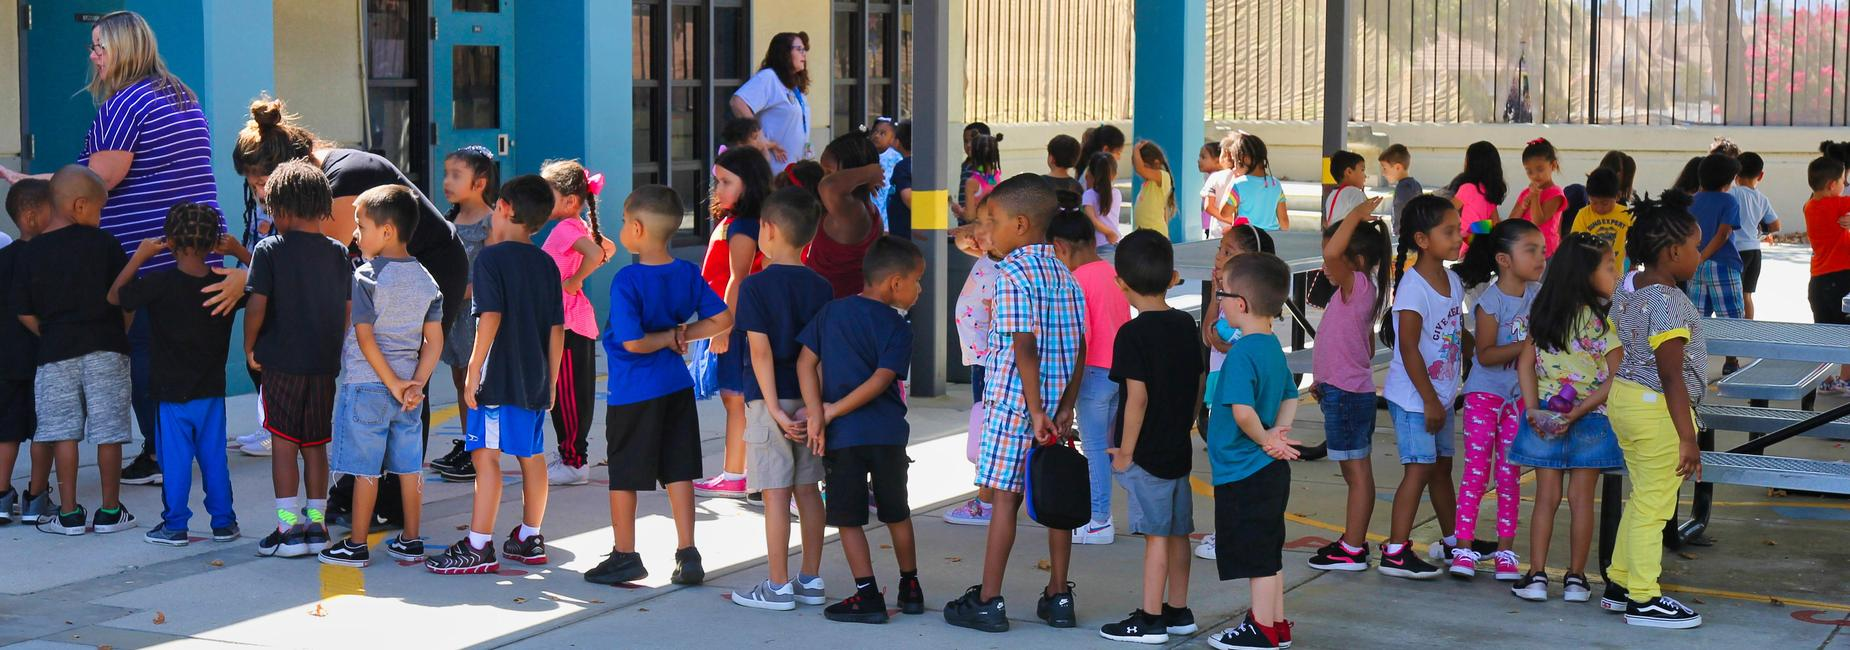 Students waiting in line to enter the classroom